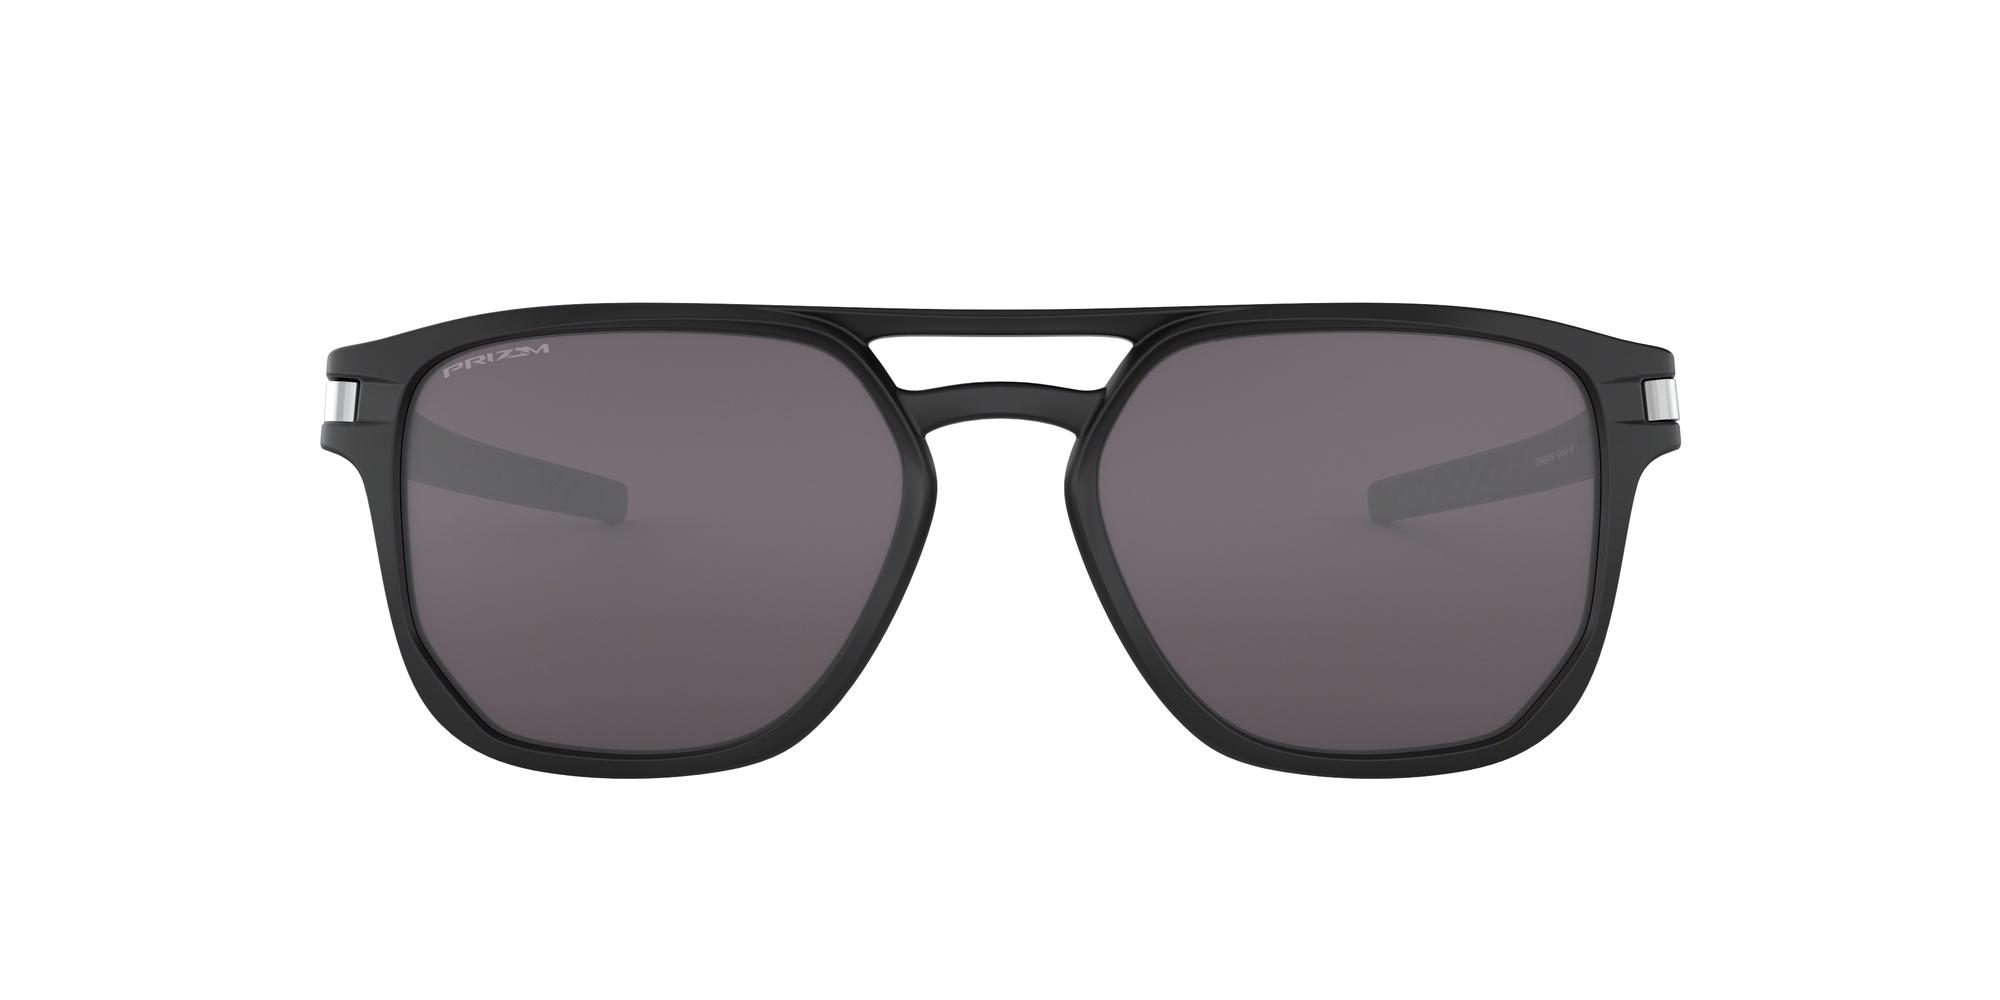 2ae792a02d Oakley Philippines  Oakley price list - Oakley Shades   Sunglasses ...